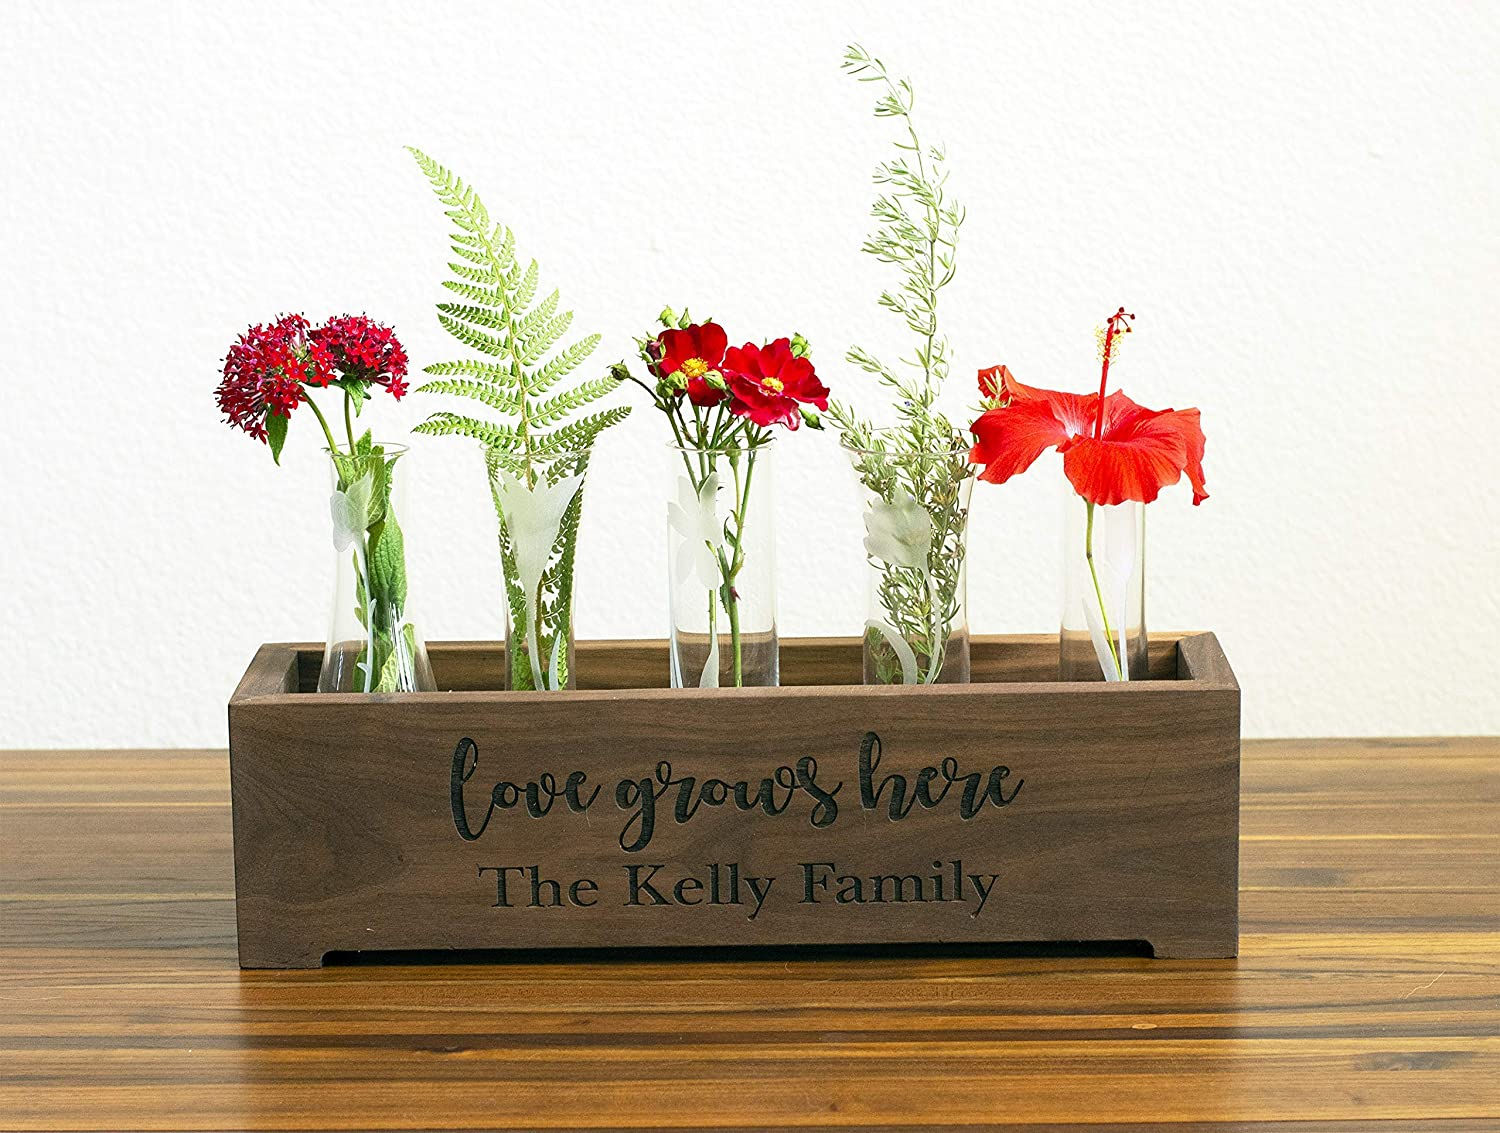 couple gift wedding gift Realtor Closing rustic wood planter Gift for grad wp024 Housewarming Gift Custom wood table centerpiece